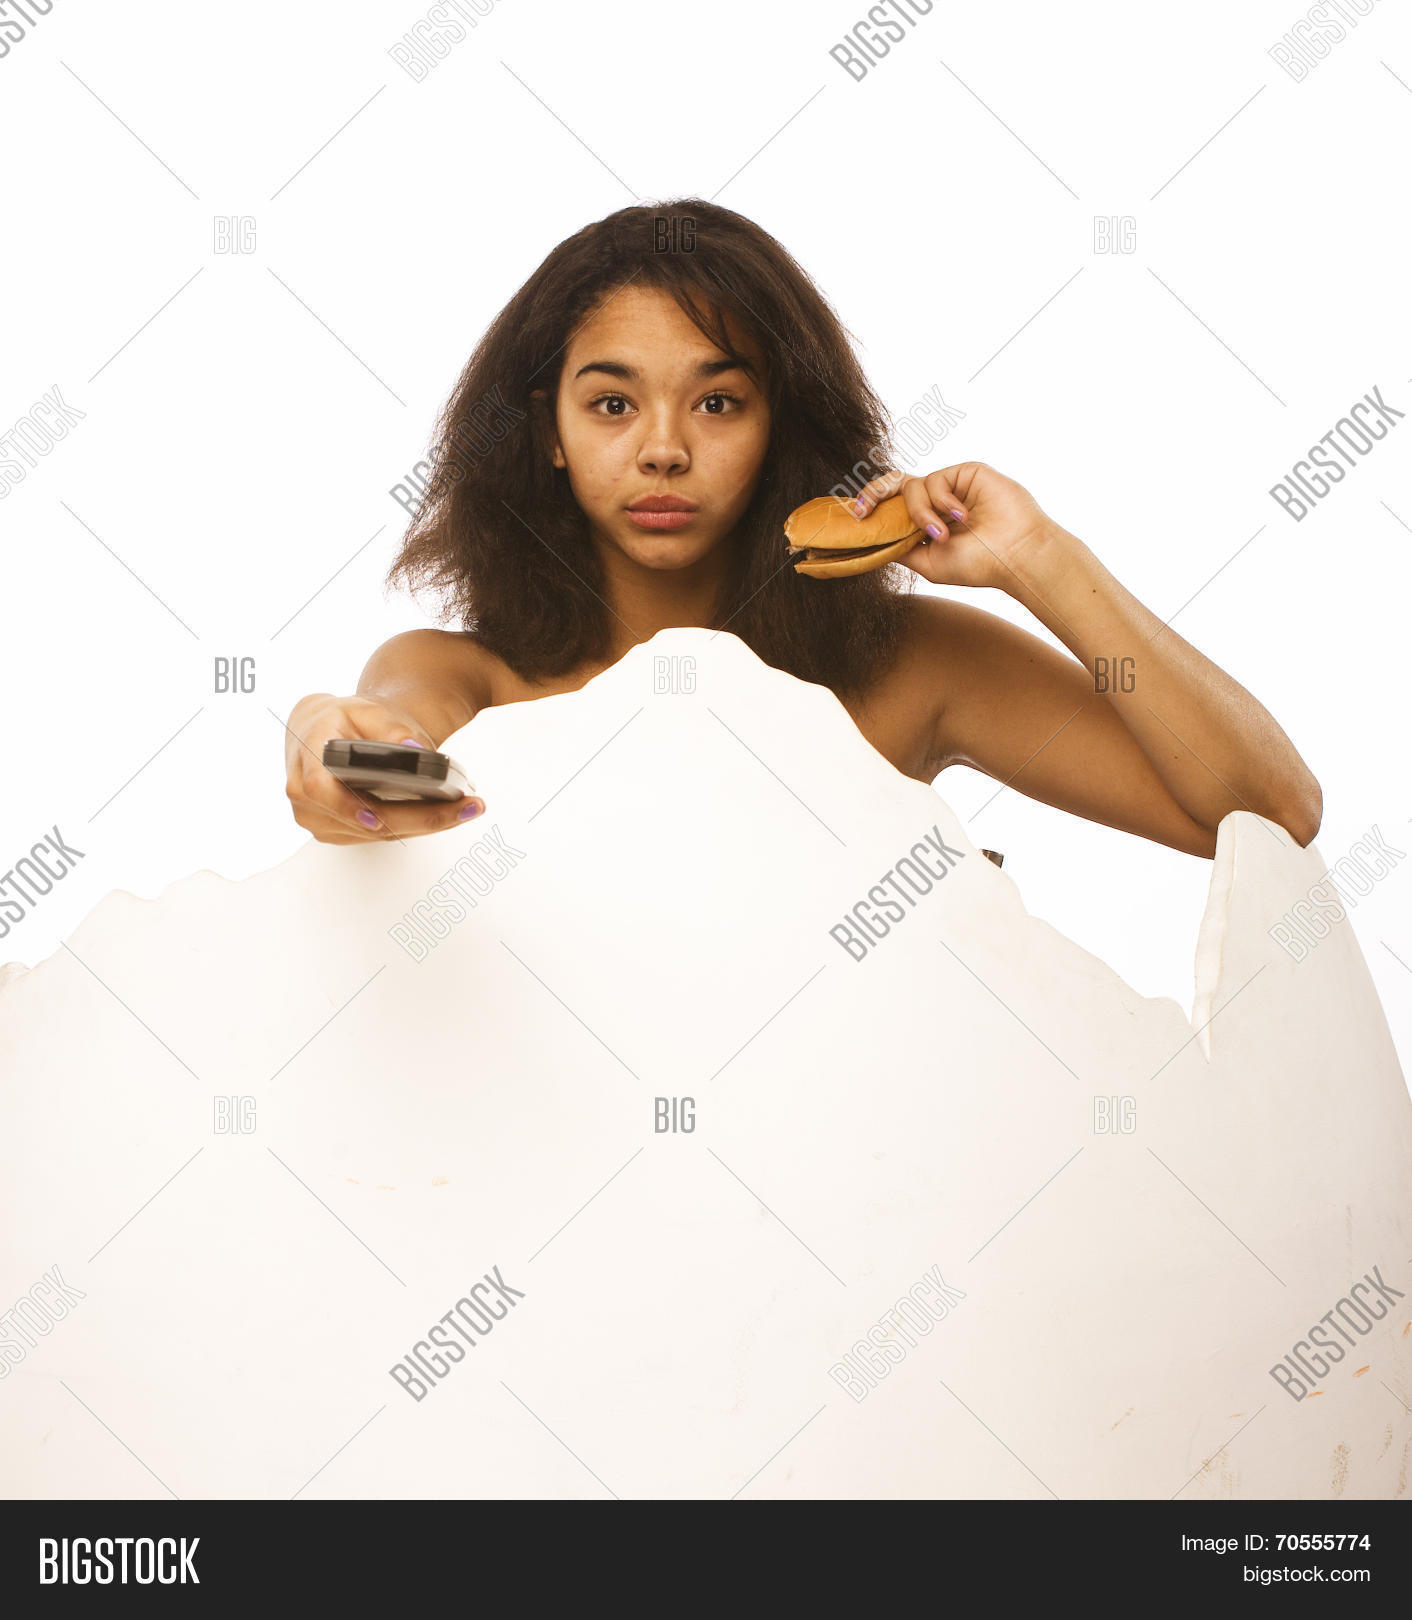 young fat african american teen girl with remote and hamburger isolated,  unhealthy obsessed